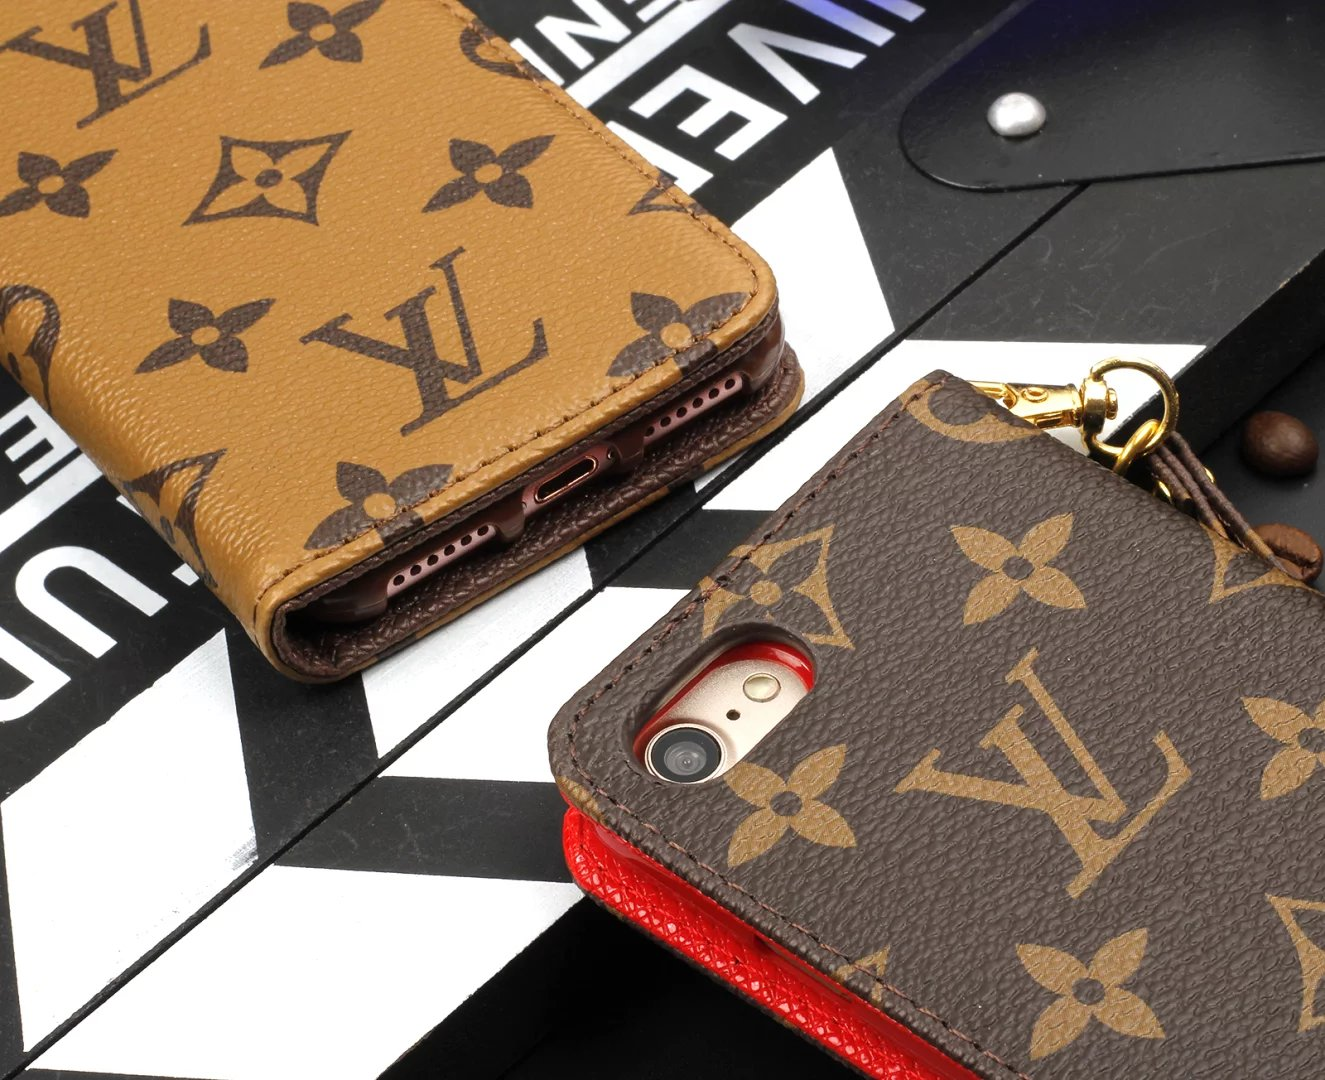 schutzhülle für iphone günstige iphone hüllen Louis Vuitton iphone6s plus hülle iphone 6s Plus filztasche handytasche iphone 6 bilder handyhülle iphone 6s Plus  iphone hülle gummi iphone 6s Plus c hülle